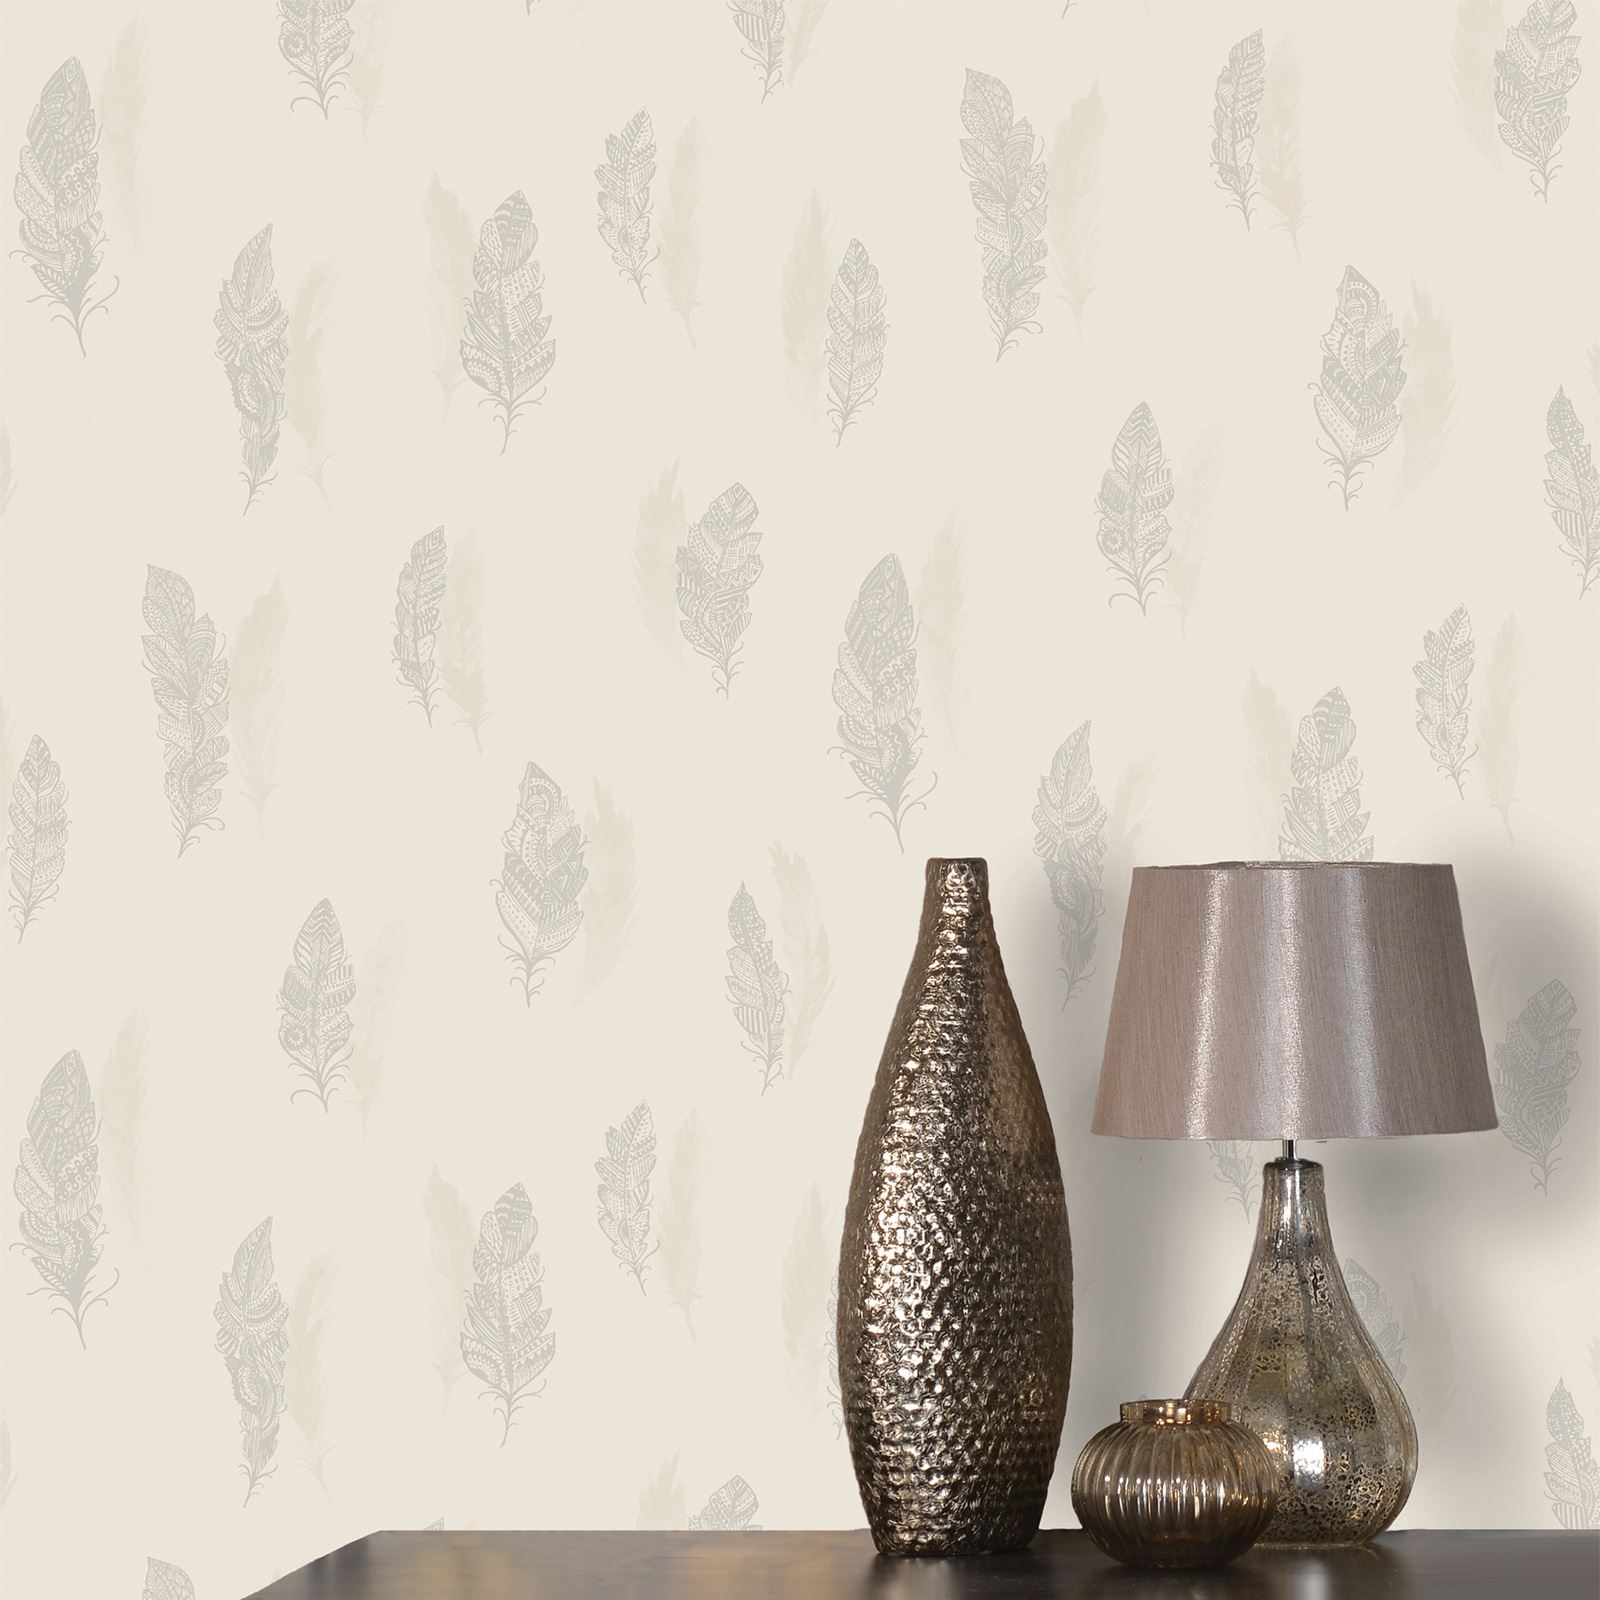 Image is loading BEAUTIFUL QUILL FEATHER WALLPAPER HOLDEN DECOR CREAM SILVER. BEAUTIFUL QUILL FEATHER WALLPAPER   HOLDEN DECOR   CREAM   SILVER